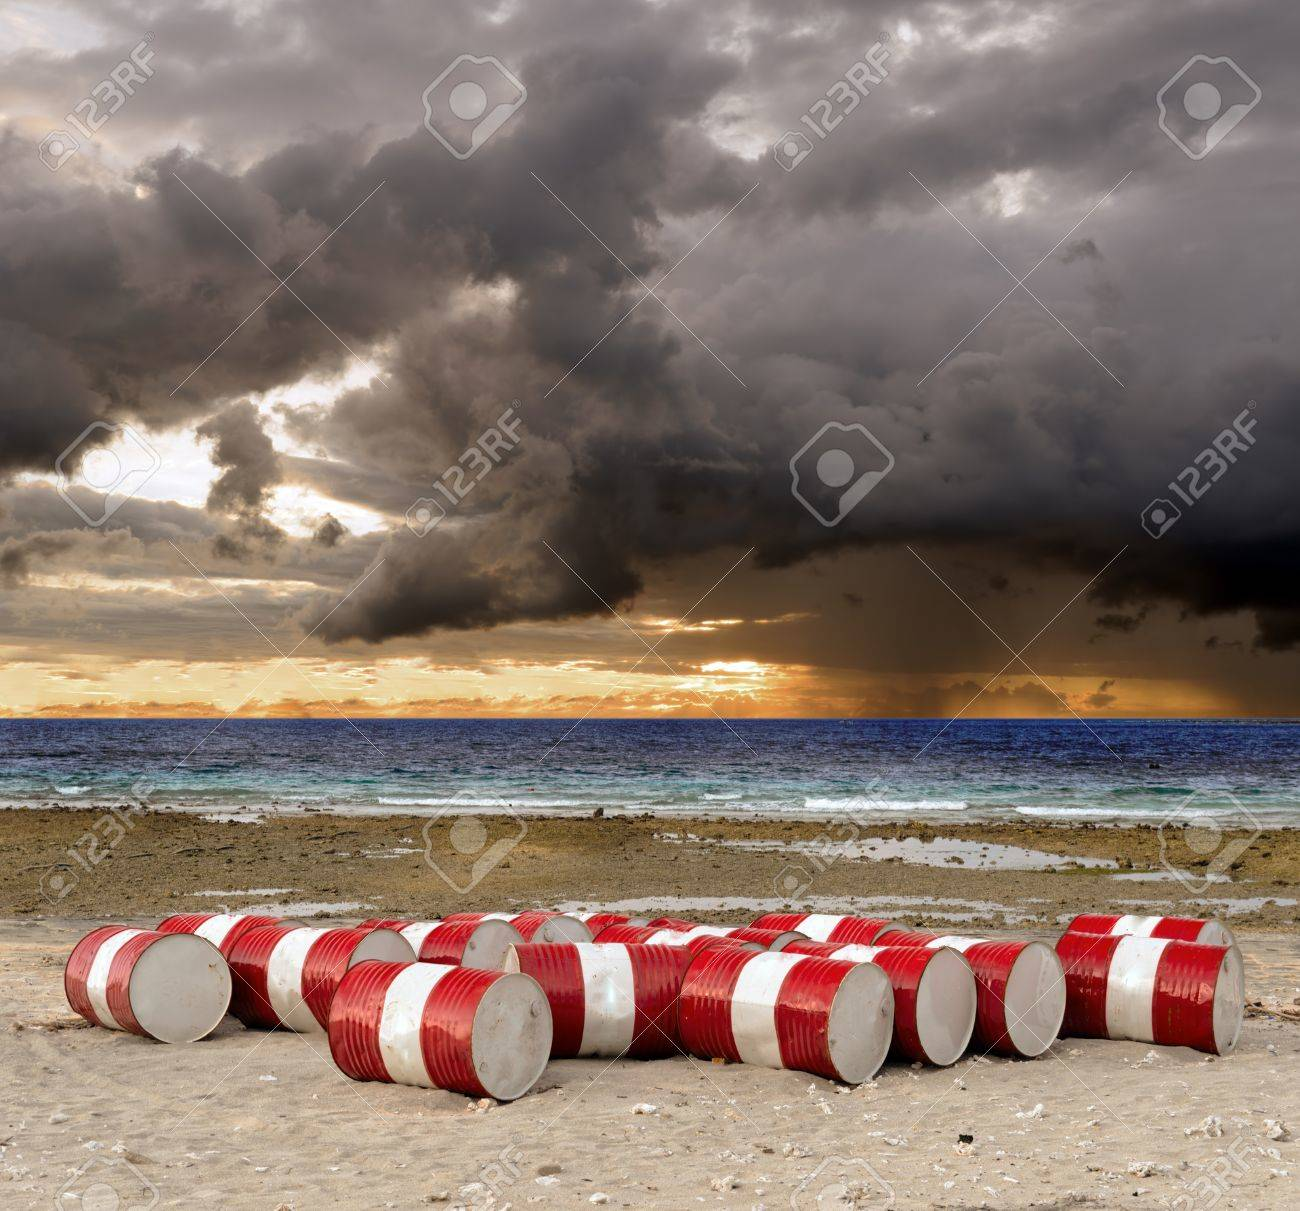 Lot of oil barrels on a seashore  Environment pollution Stock Photo - 14264652